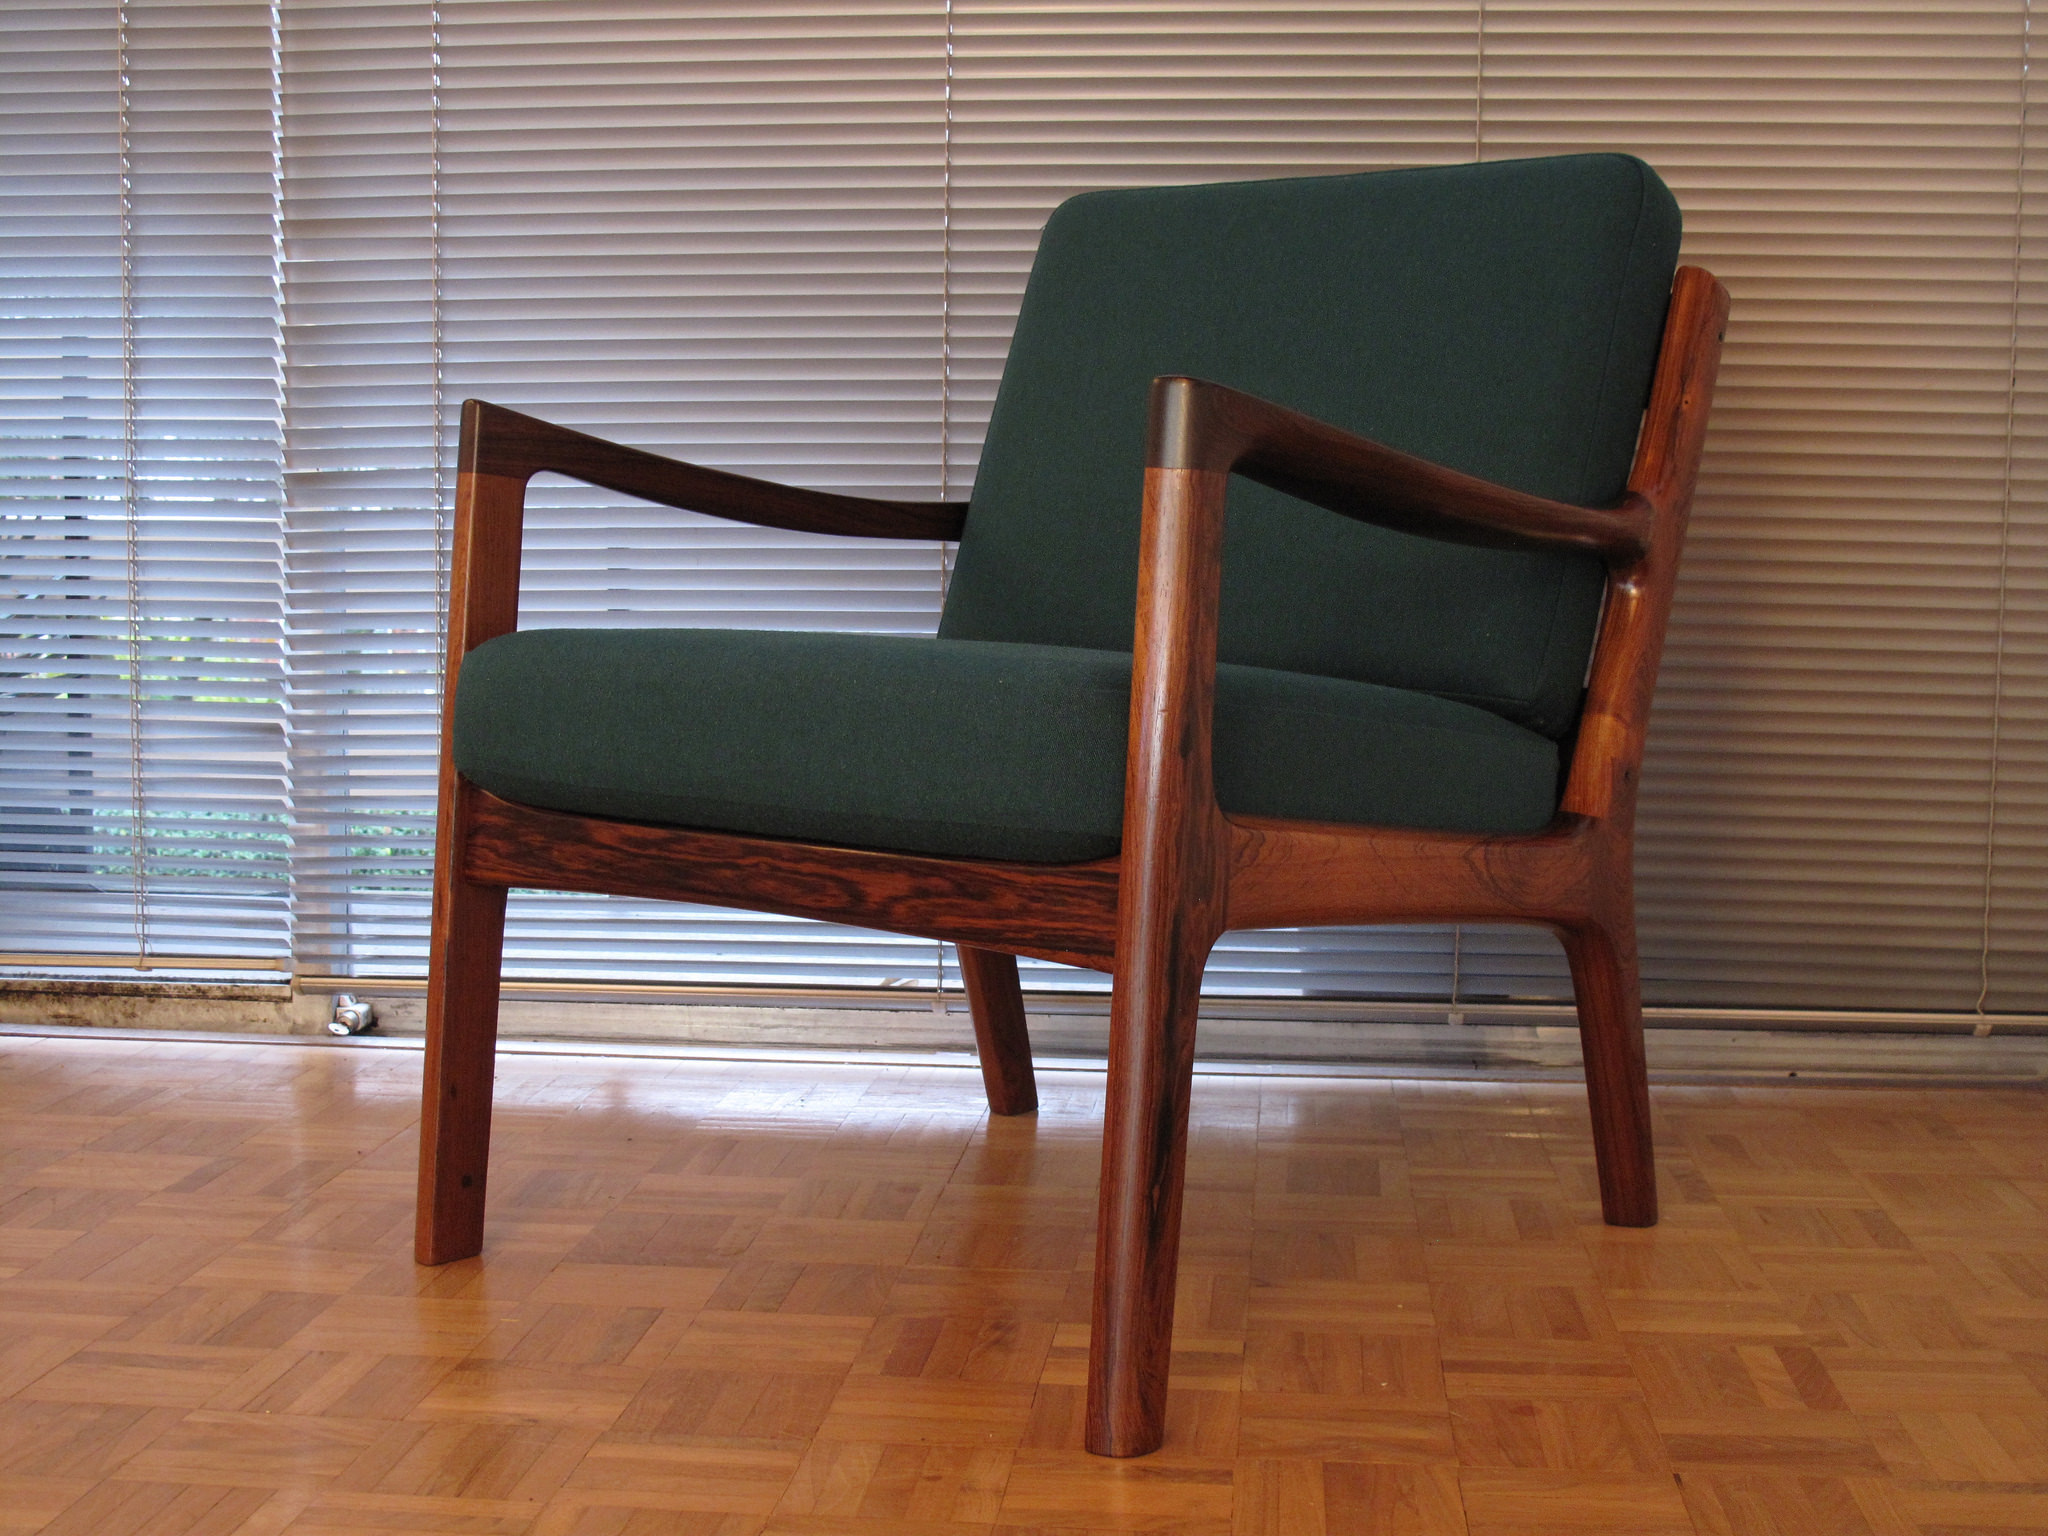 Fabulous Ole Wanscher Rosewood Senator Chair With Brand New Old Stock Cushions Gmtry Best Dining Table And Chair Ideas Images Gmtryco